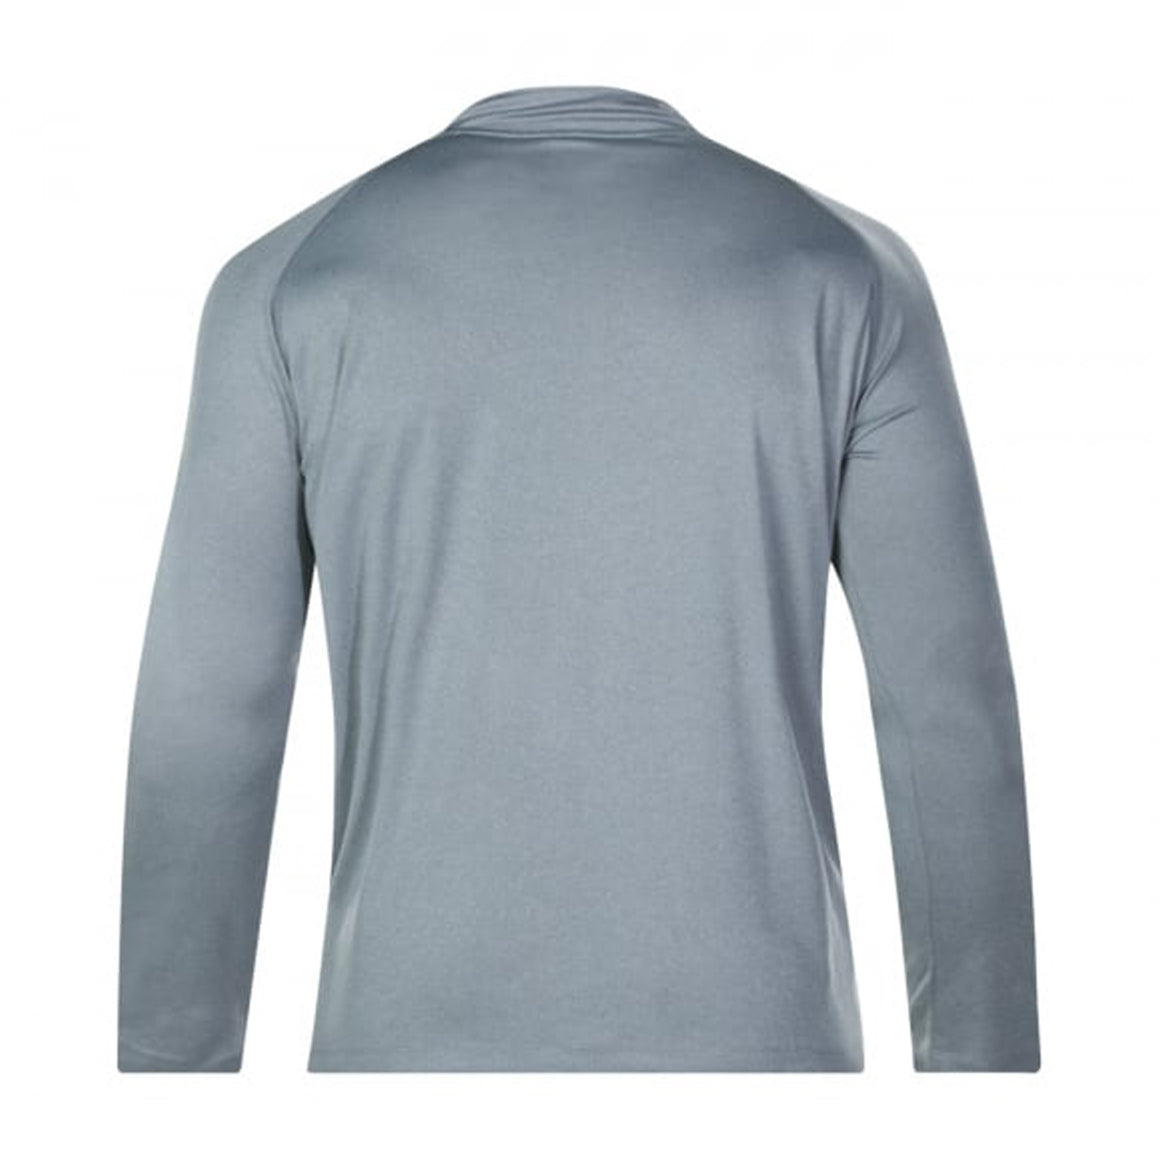 Vapodri First Layer for Men in Grey